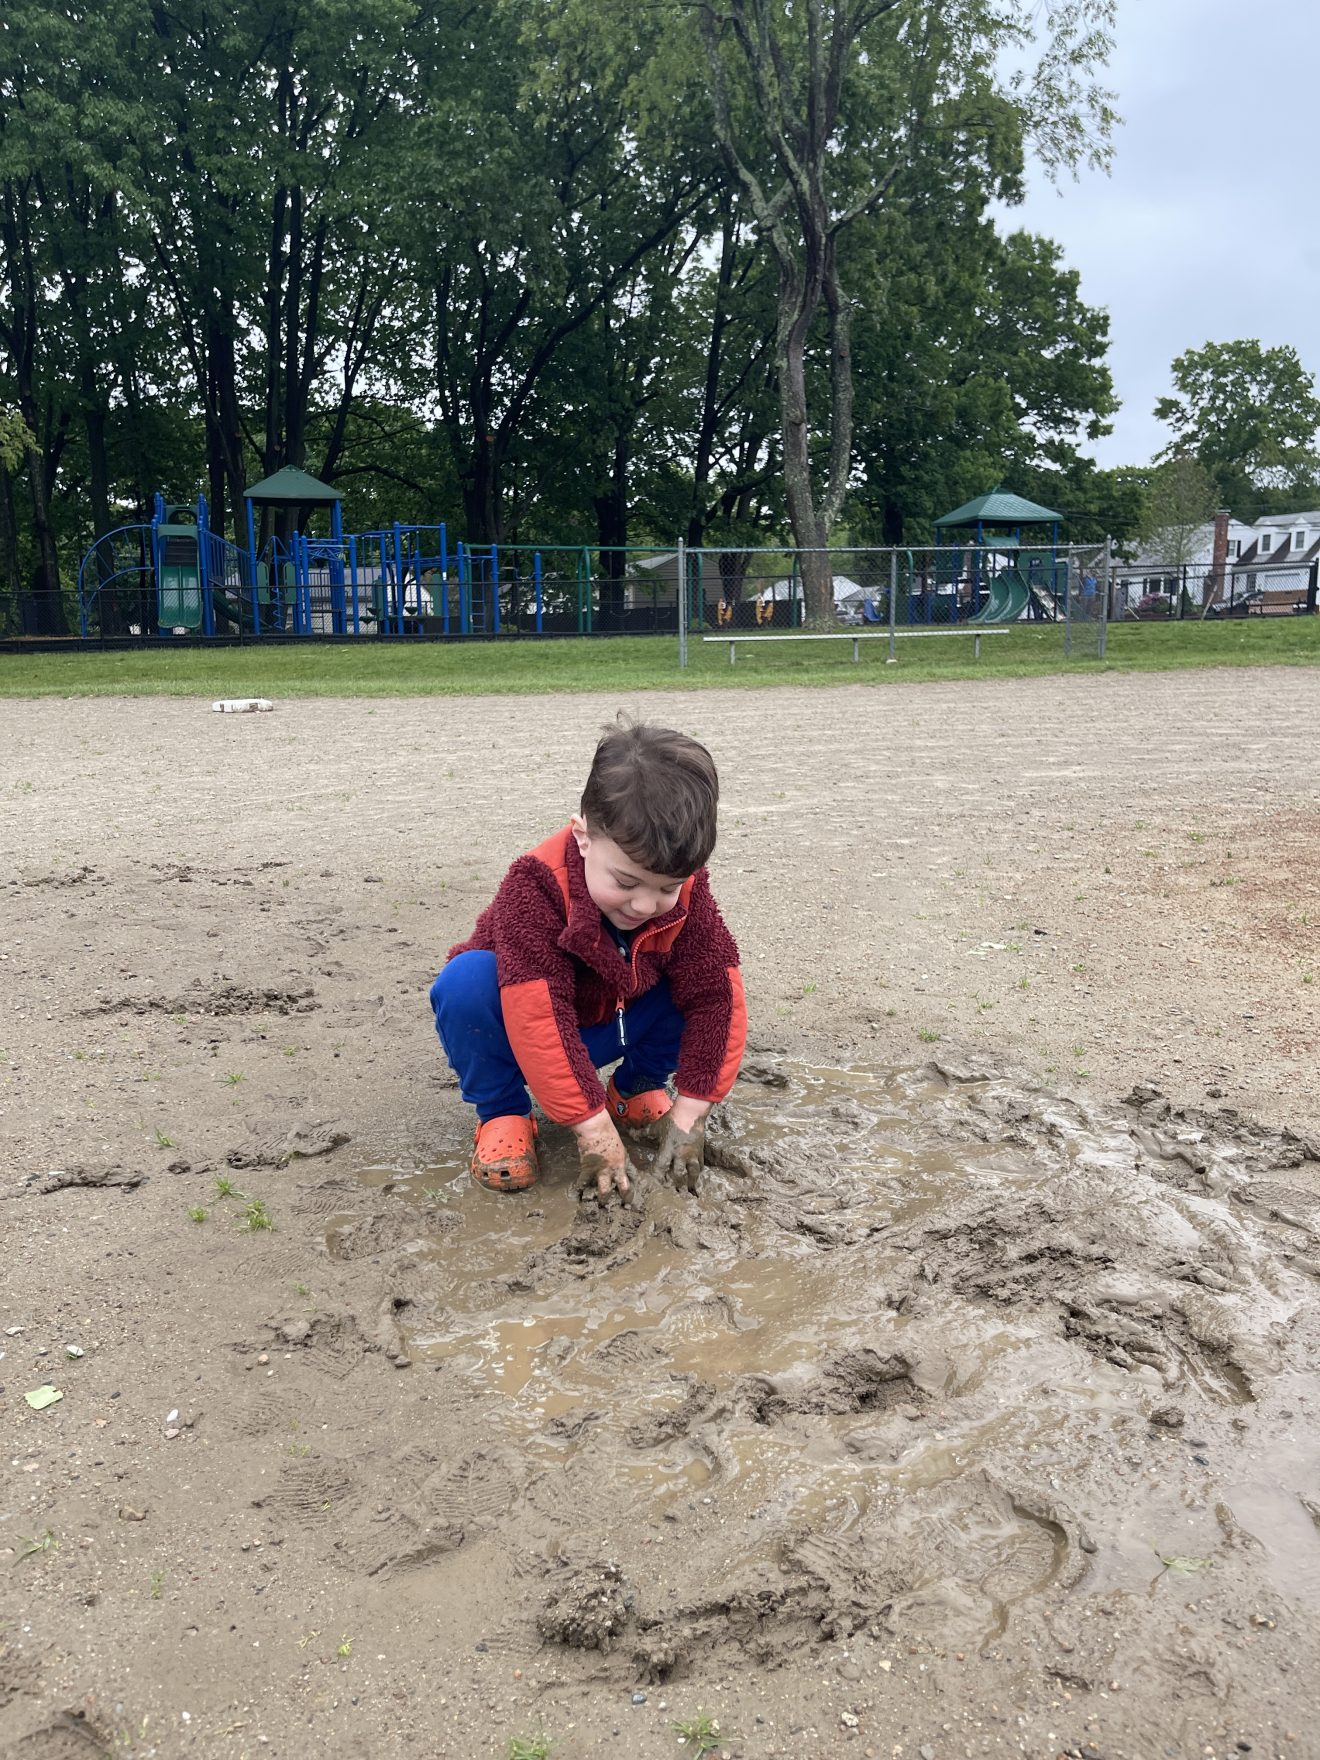 Watching My Son Play in the Mud